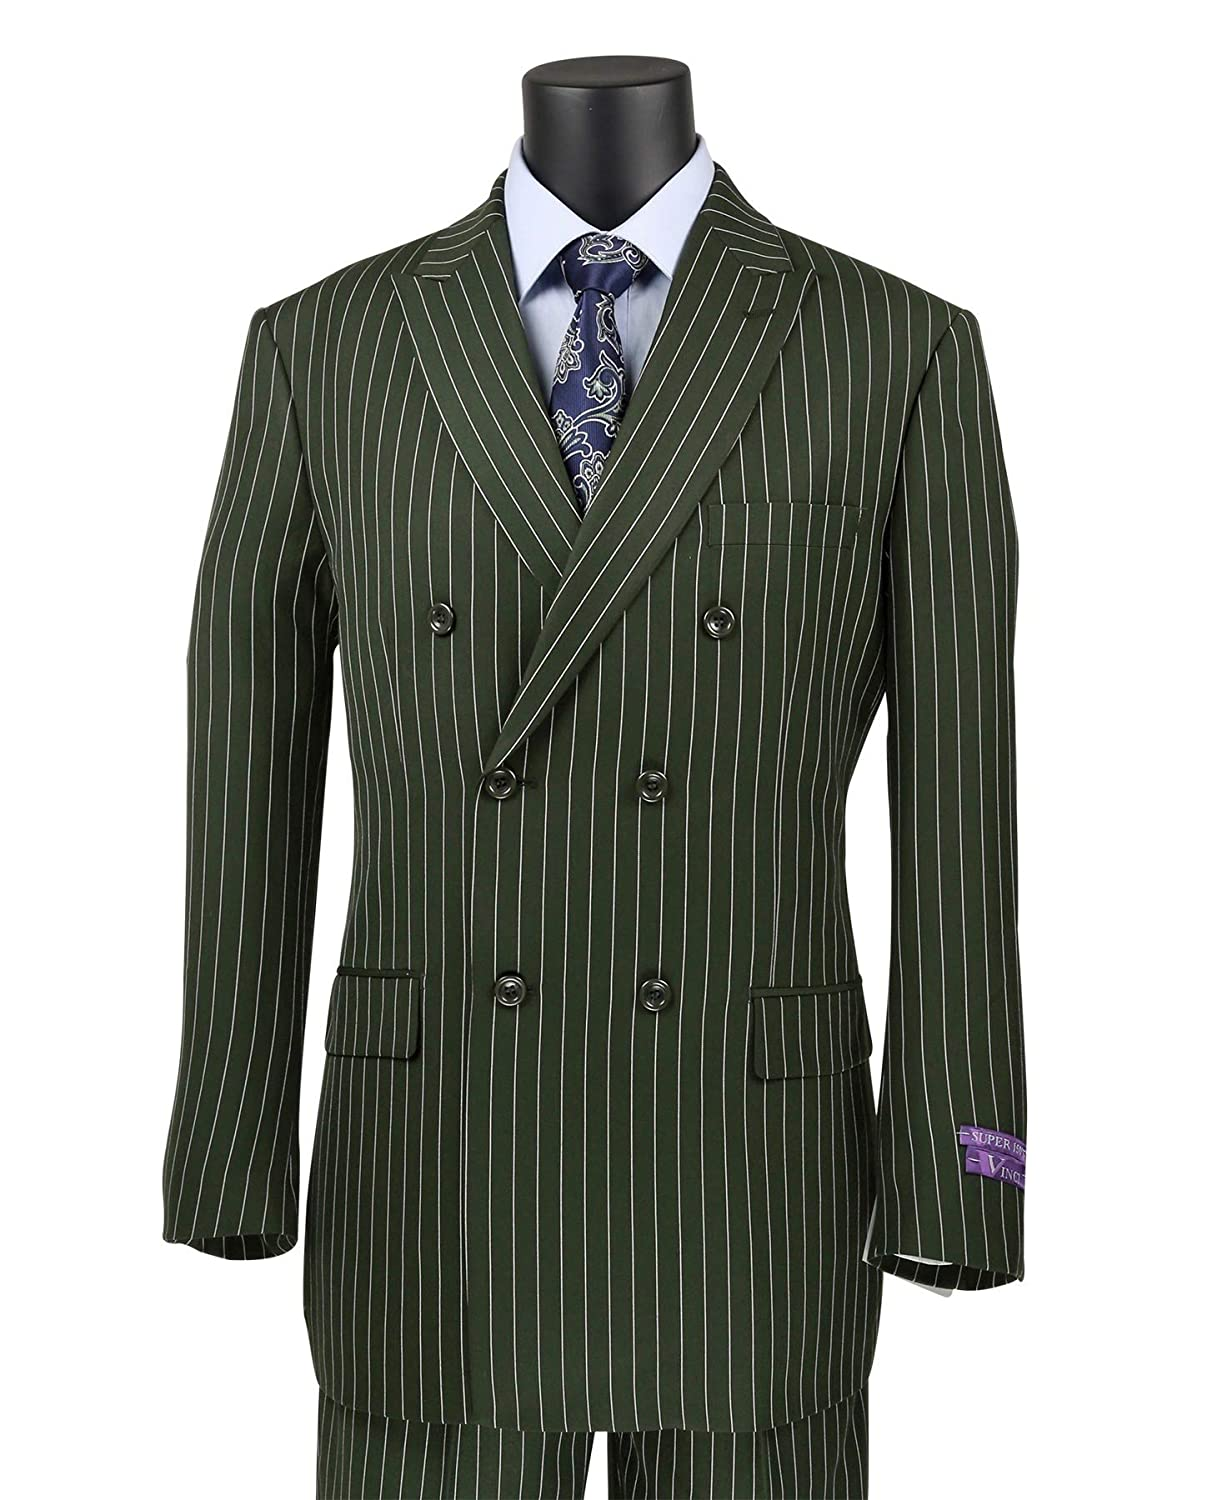 1920s Men's Suits History VINCI Mens Gangster Pinstriped Double Breasted 6 Button Classic-Fit Suit New $119.95 AT vintagedancer.com